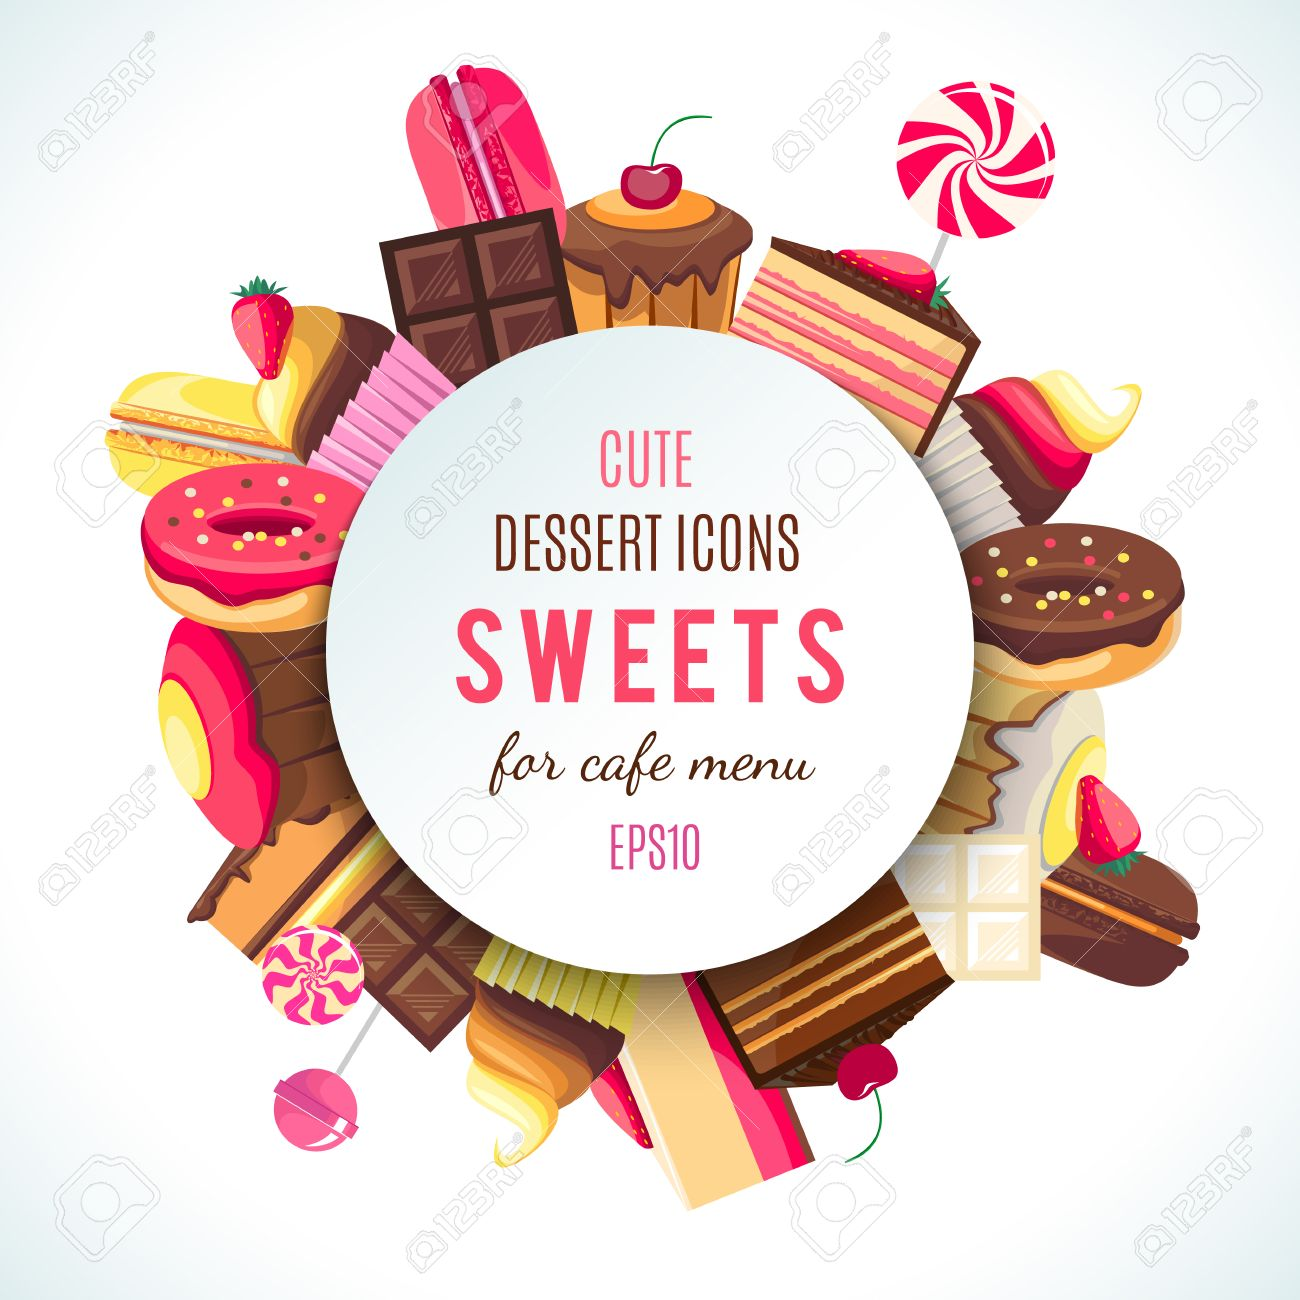 Background for sweets company logo. - 50773682